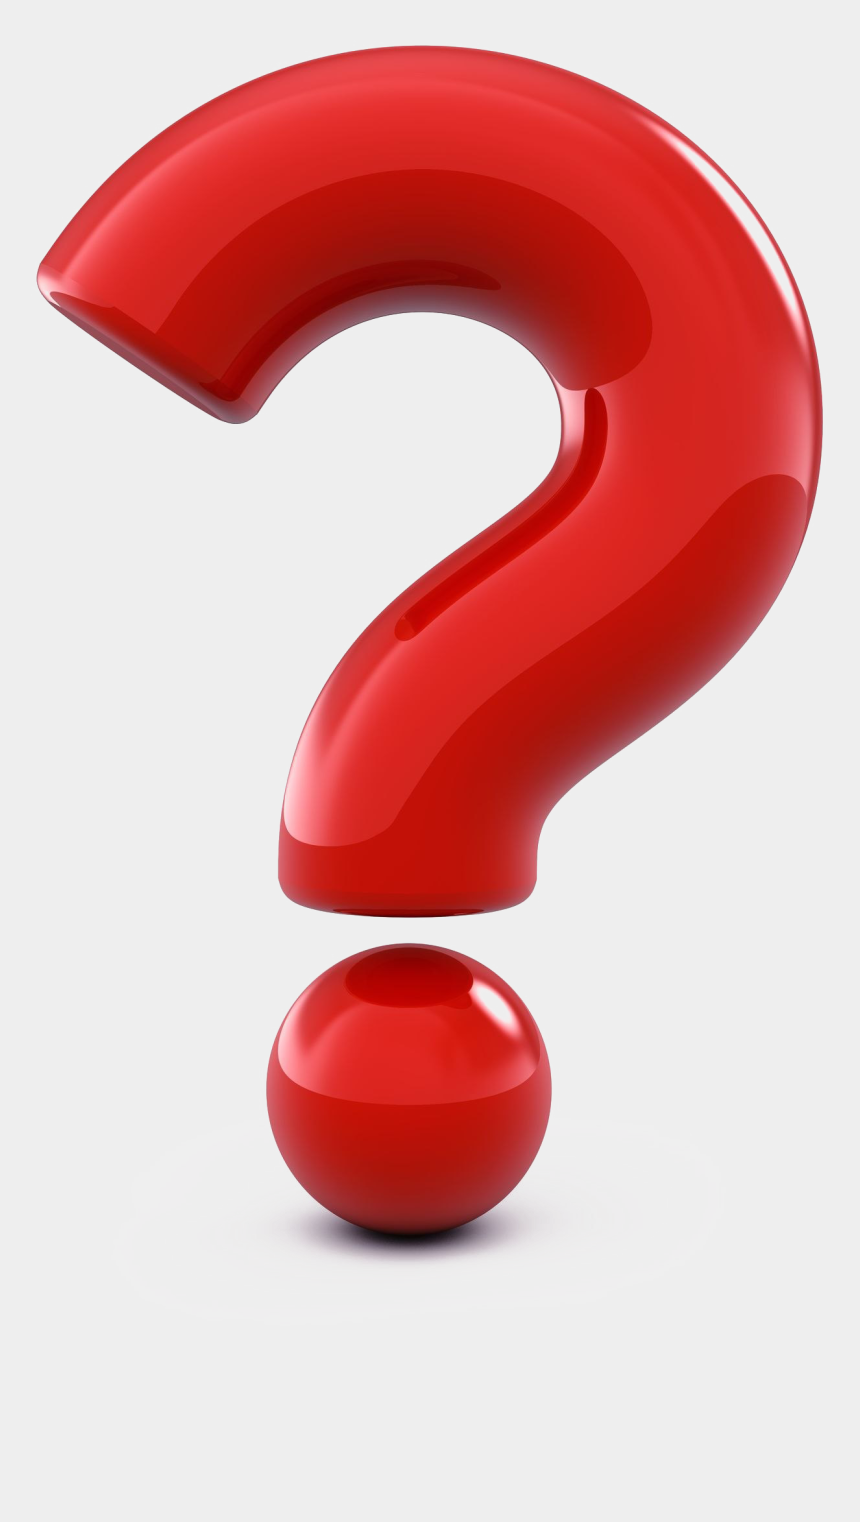 red question mark clipart, Cartoons - Question Mark Png Transparent Hd Photo - 3d Question Mark Gif